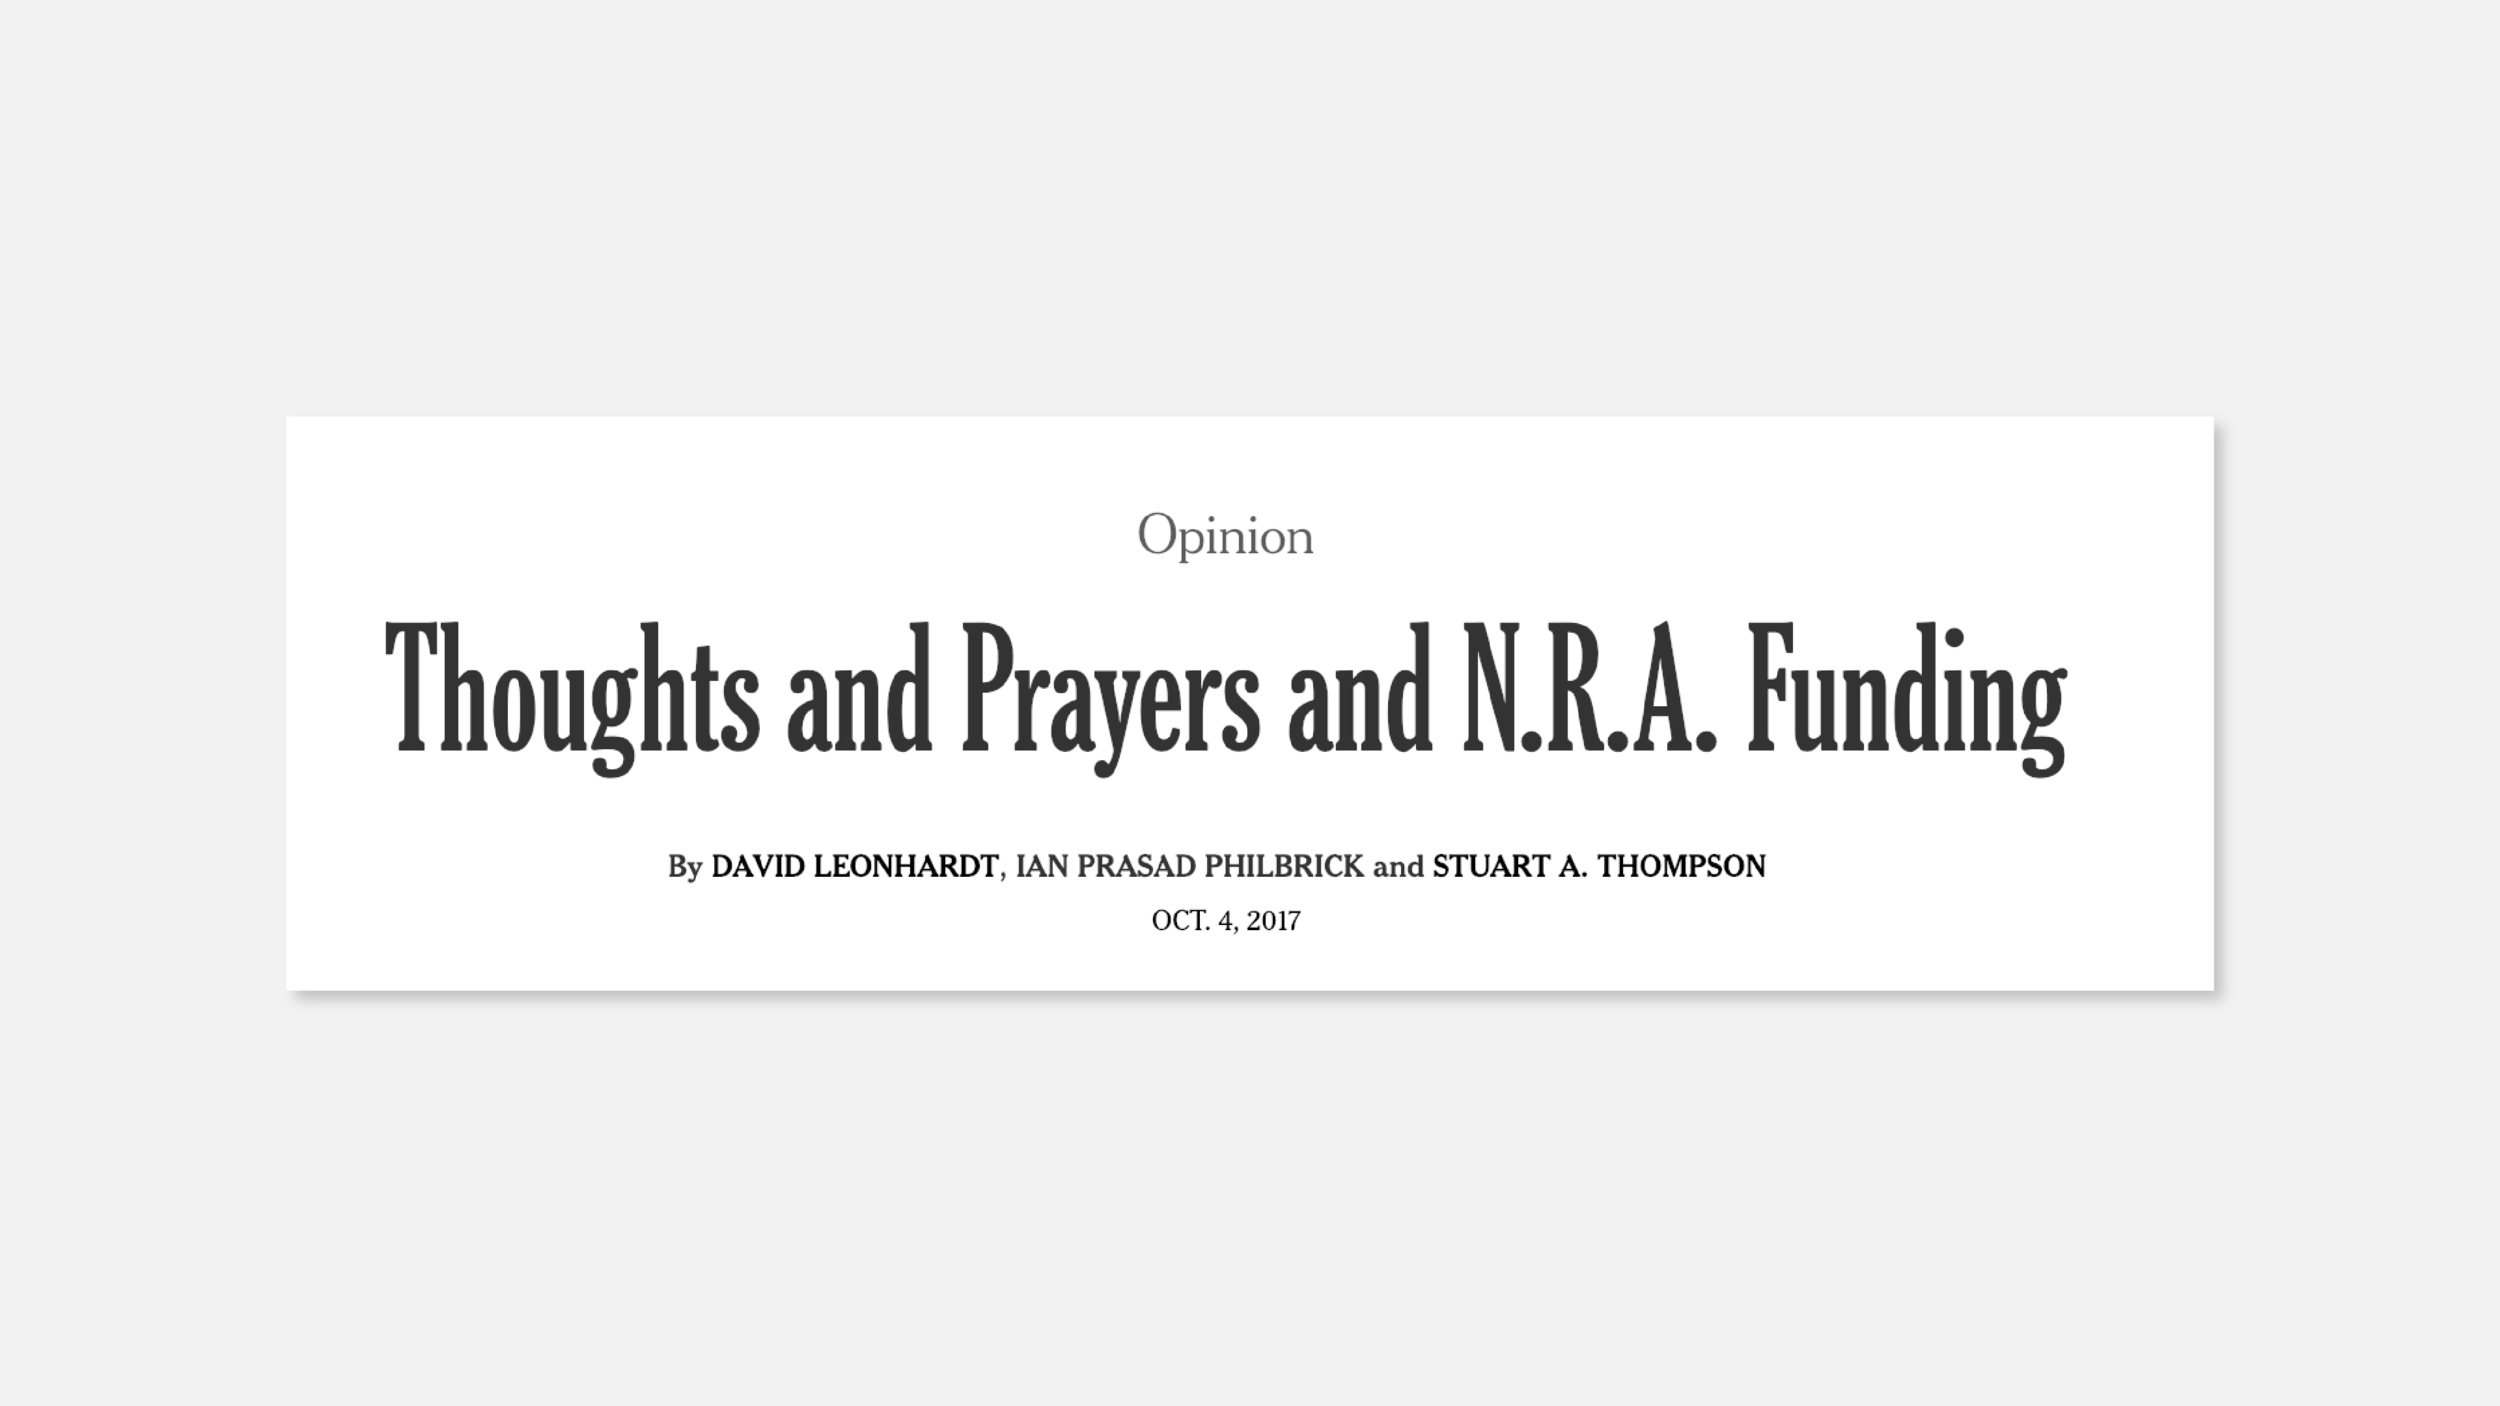 The New York Times article that helped provide my rationale for discussing NRA funding.